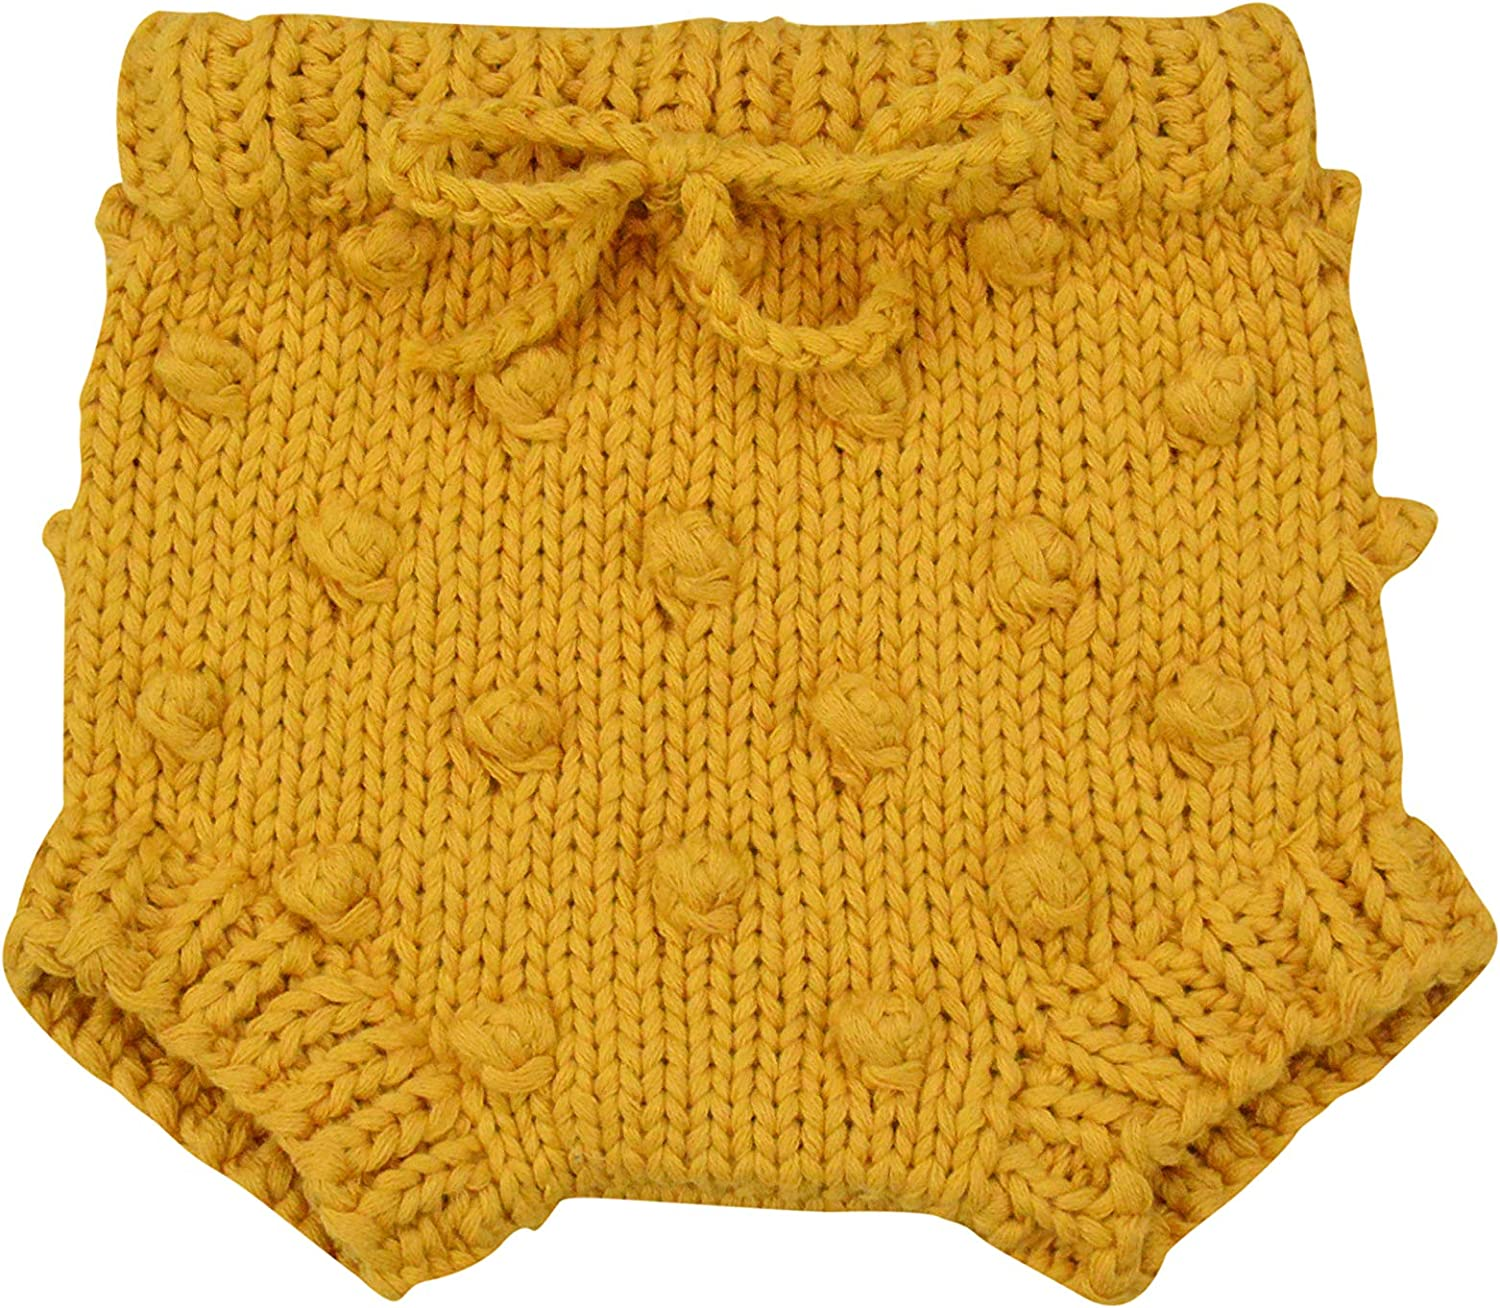 The Blueberry Hill Cotton Knit Popcorn Bloomers